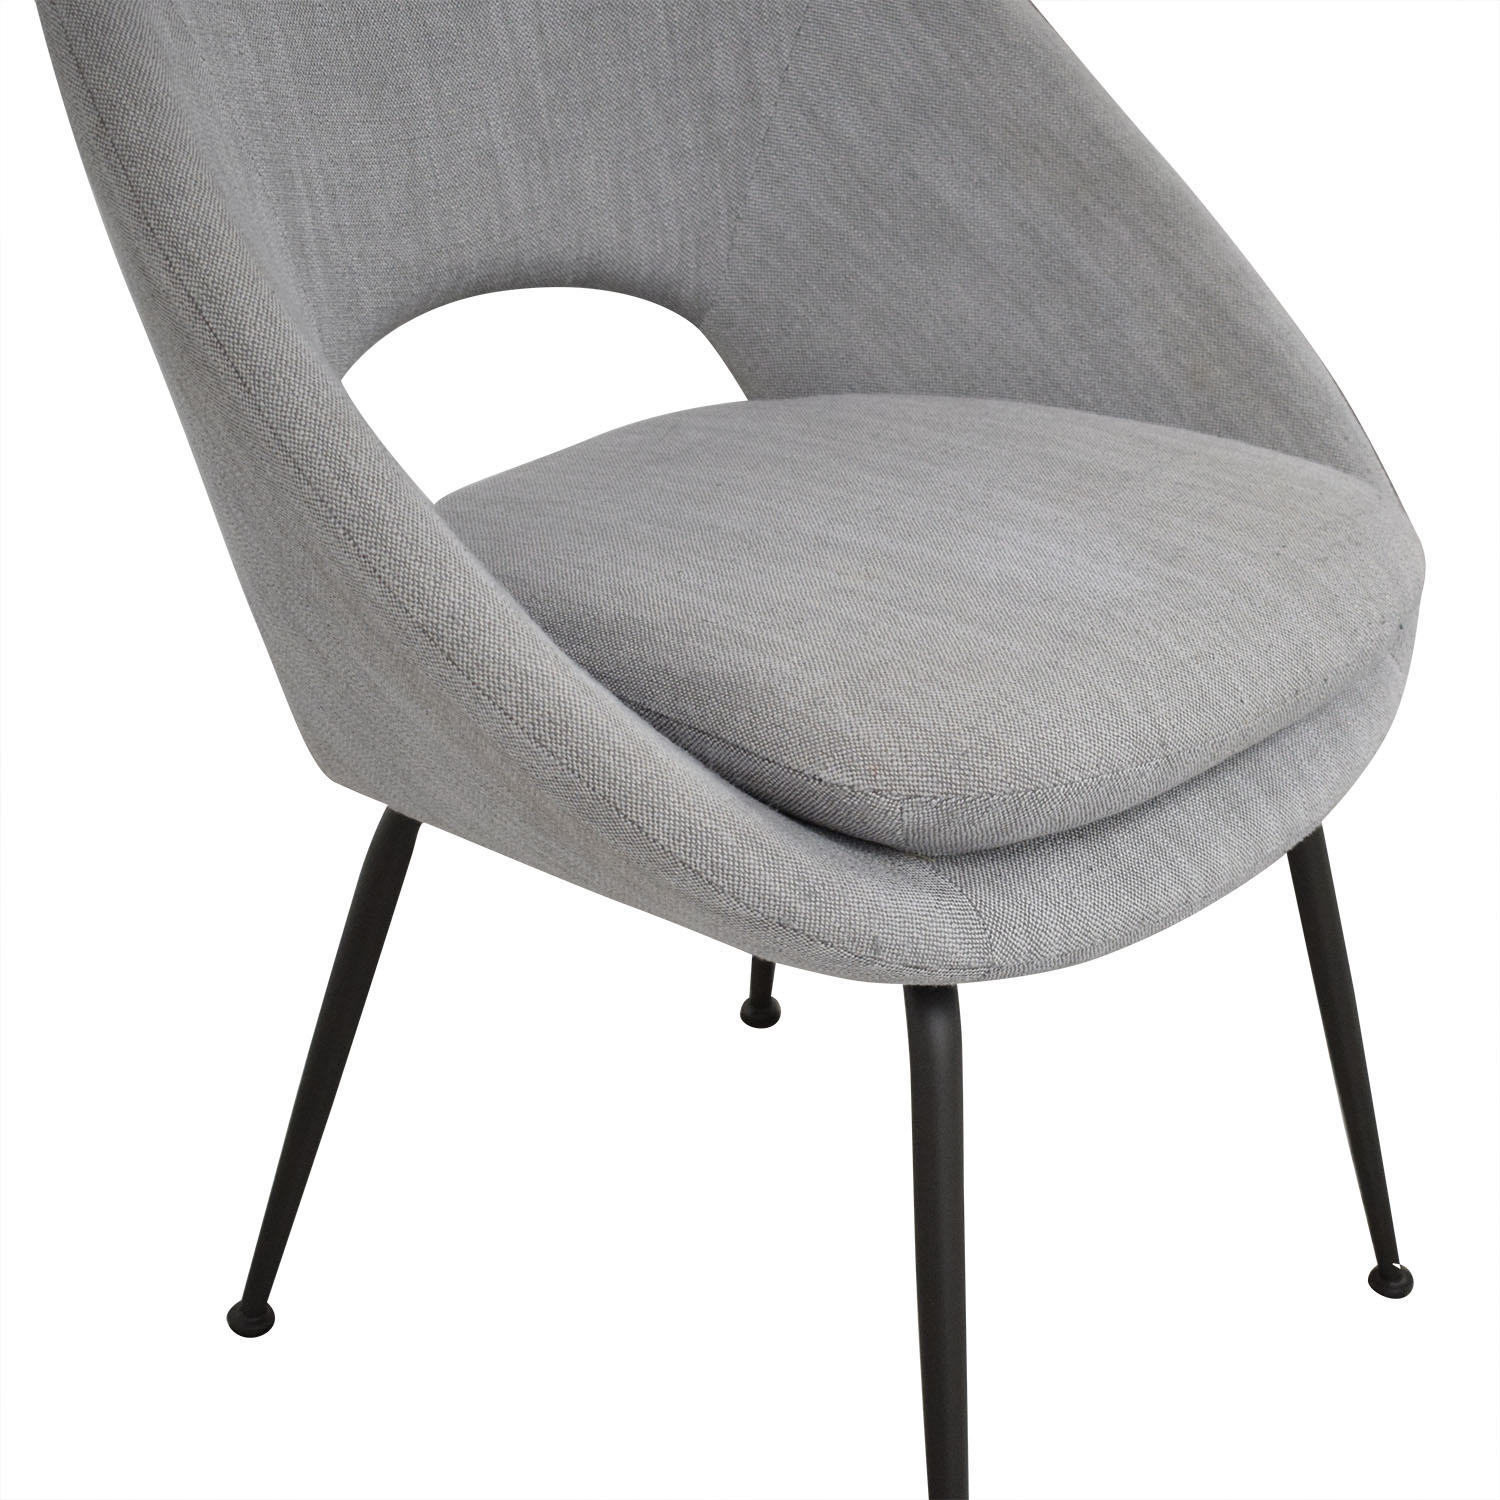 buy West Elm Orb Upholstered Dining Chairs West Elm Dining Chairs